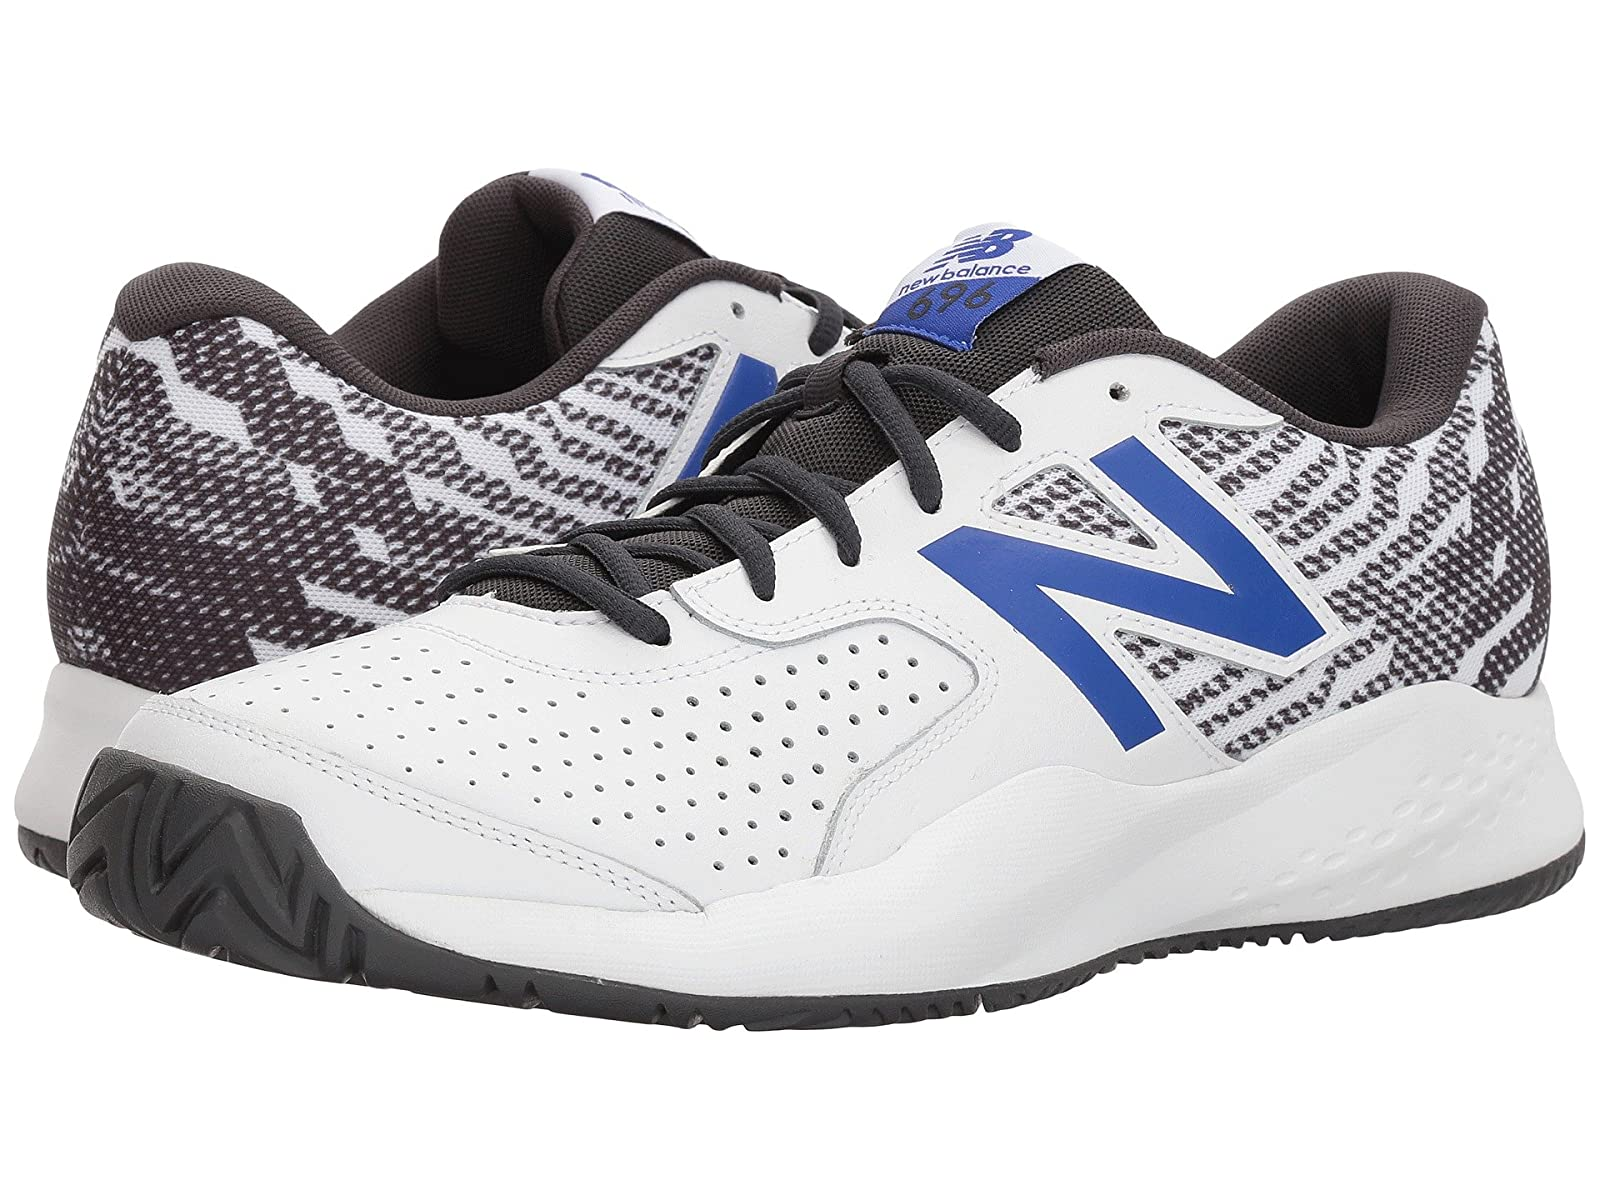 New Balance 696v3Cheap and distinctive eye-catching shoes